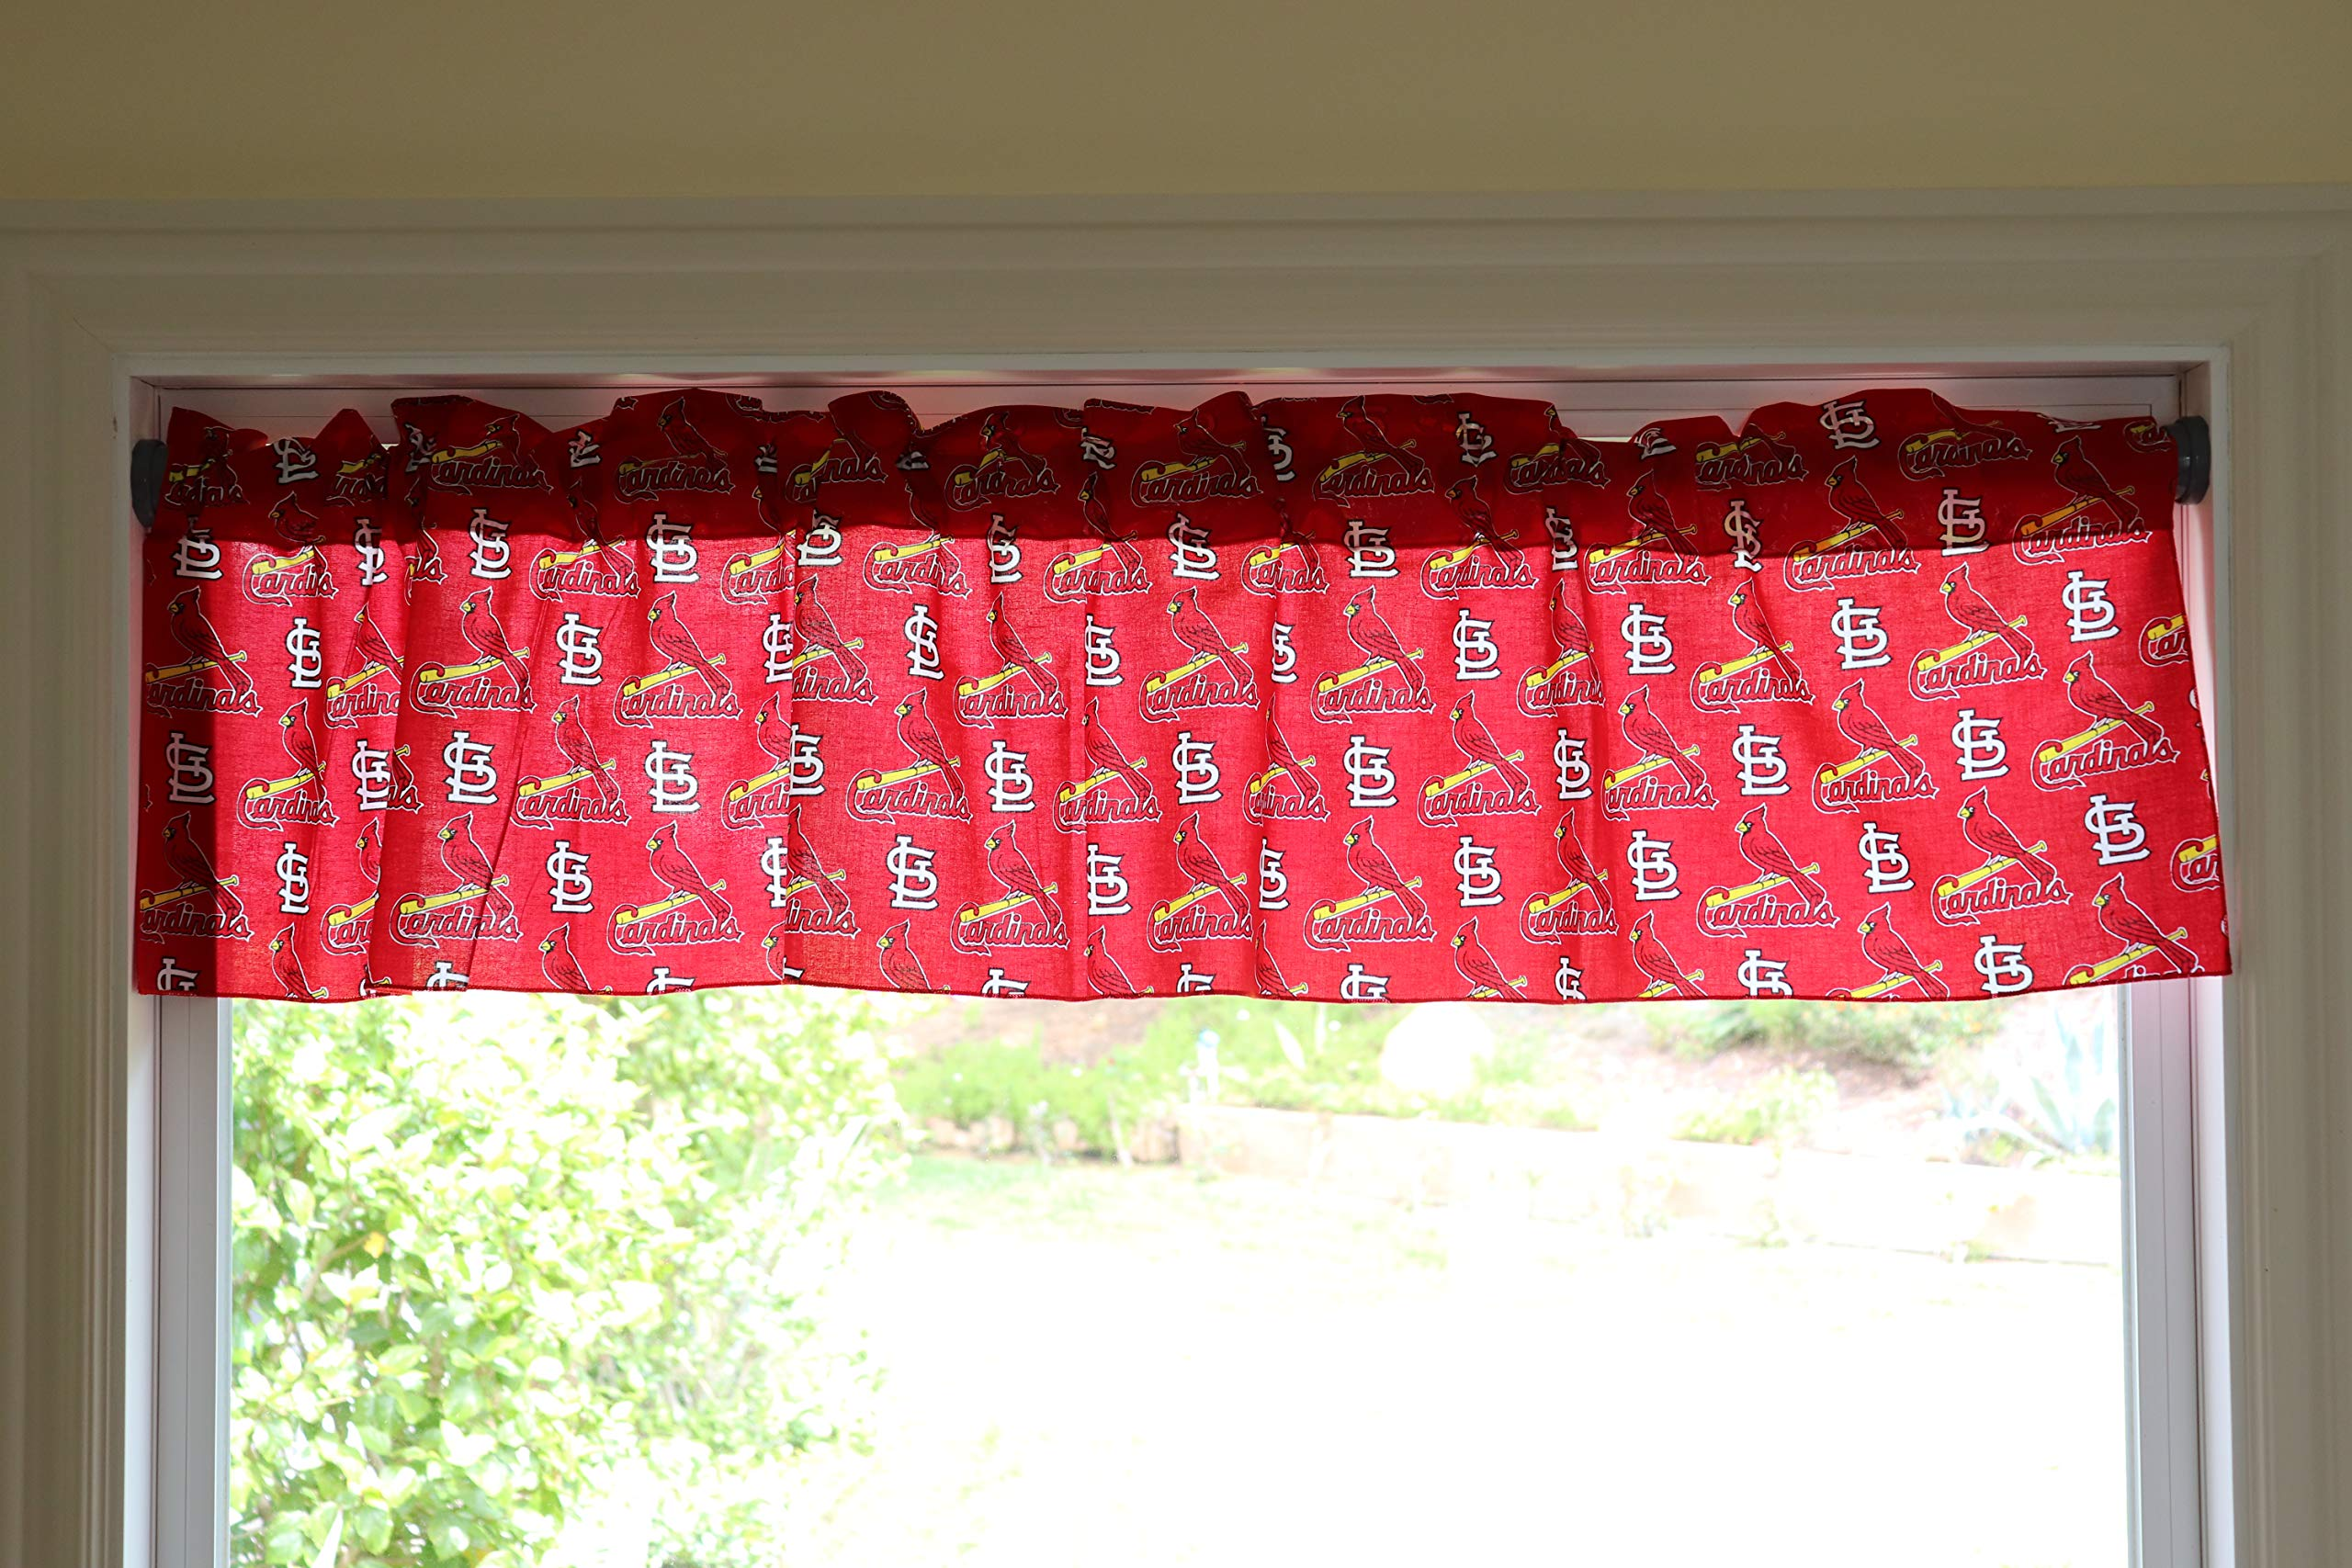 lovemyfabric Baseball Cotton Window Valance 100% Cotton Print MLB Sports Team St. Louis Cardinals Events Kitchen Dining Room Bedroom Window Decor (58'' Wide) (14'' Tall, Red) by lovemyfabric